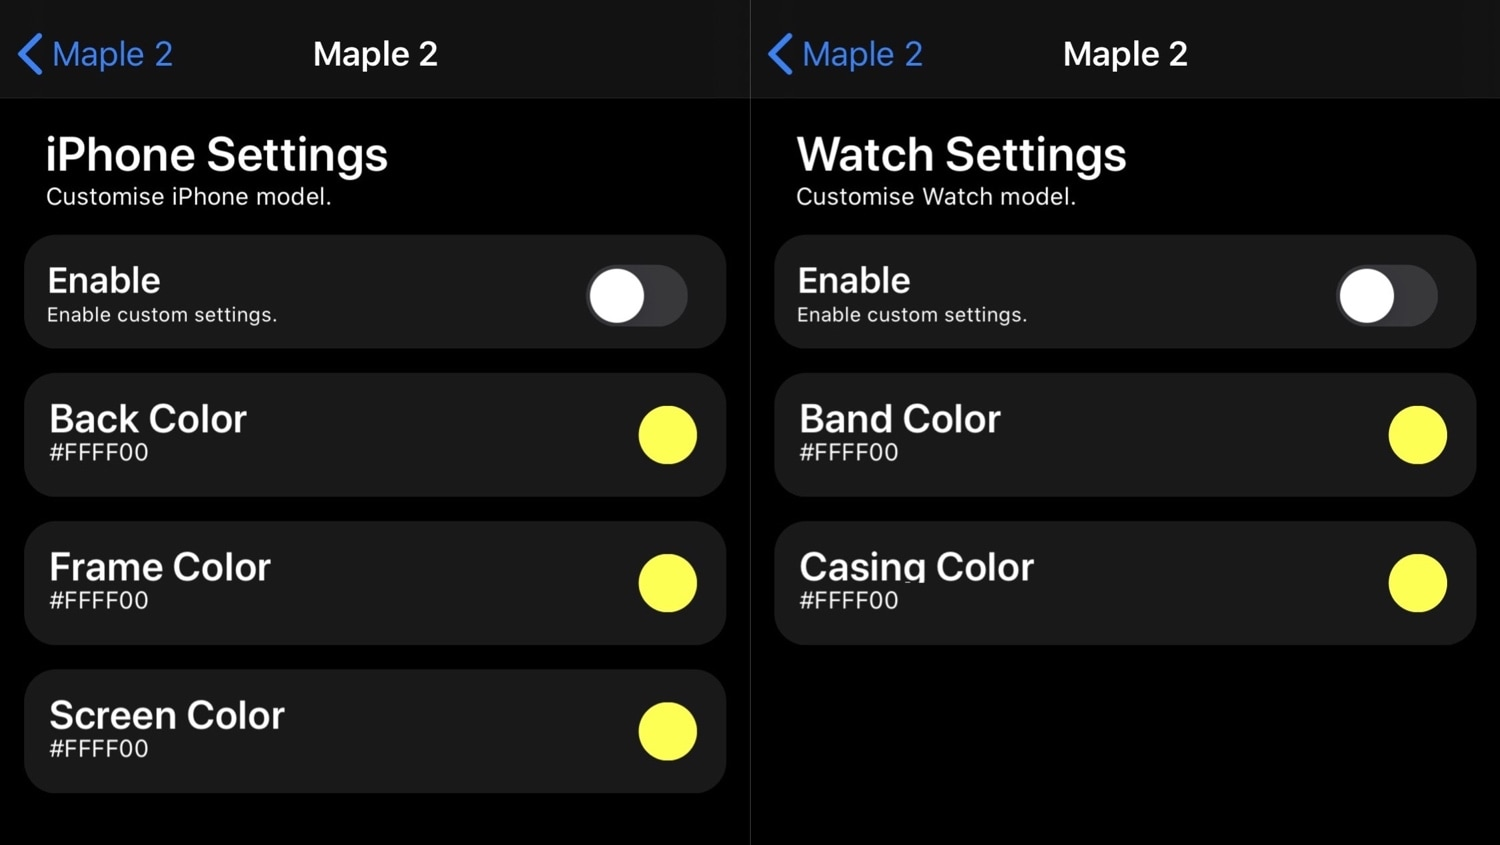 Maple 2 Settings expanded